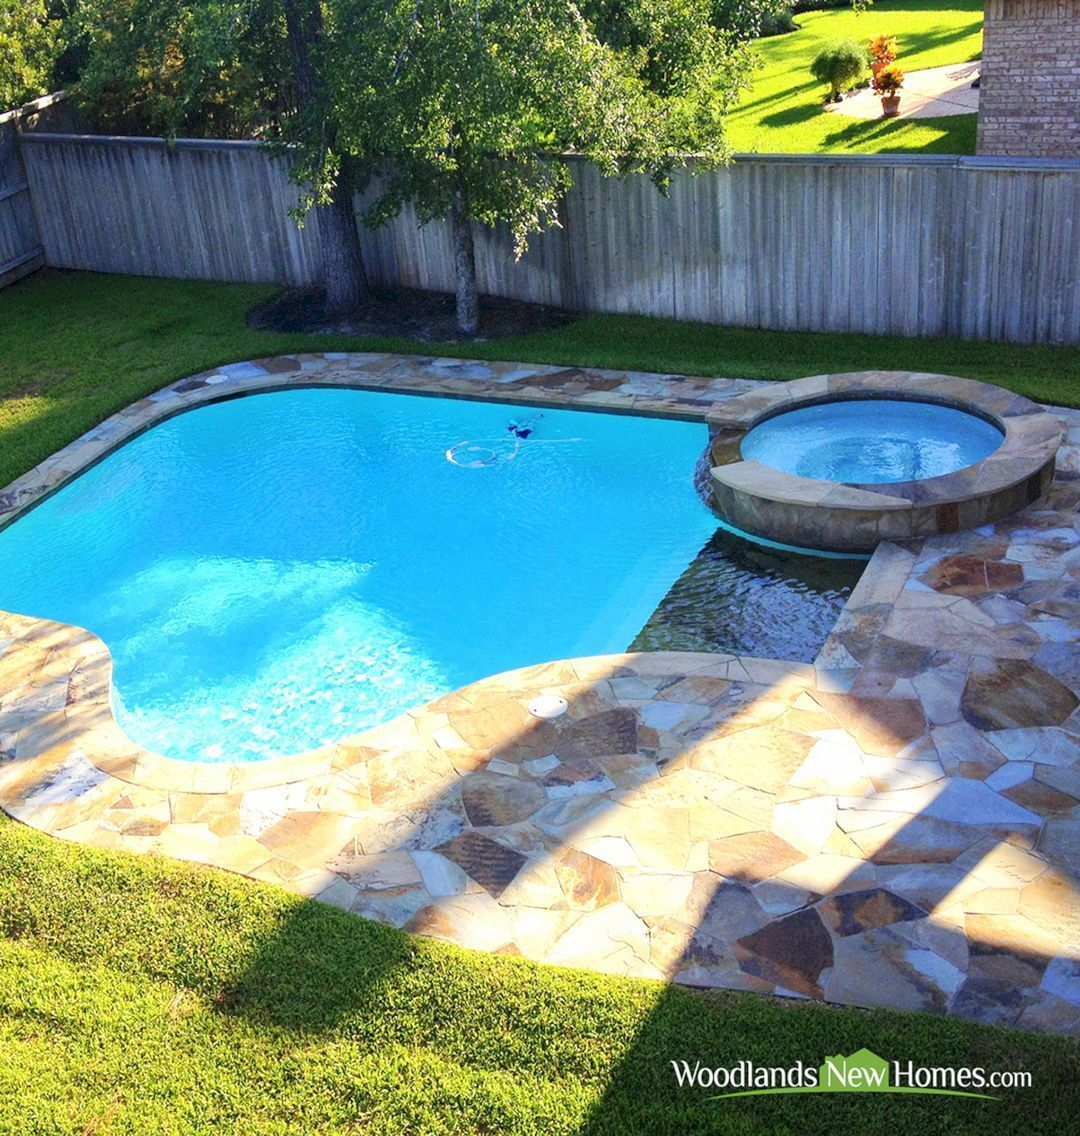 Coolest Small Pool Idea For Backyard 123. SchaeferTauchbeckenKleiner Pool  IdeenKleine ...